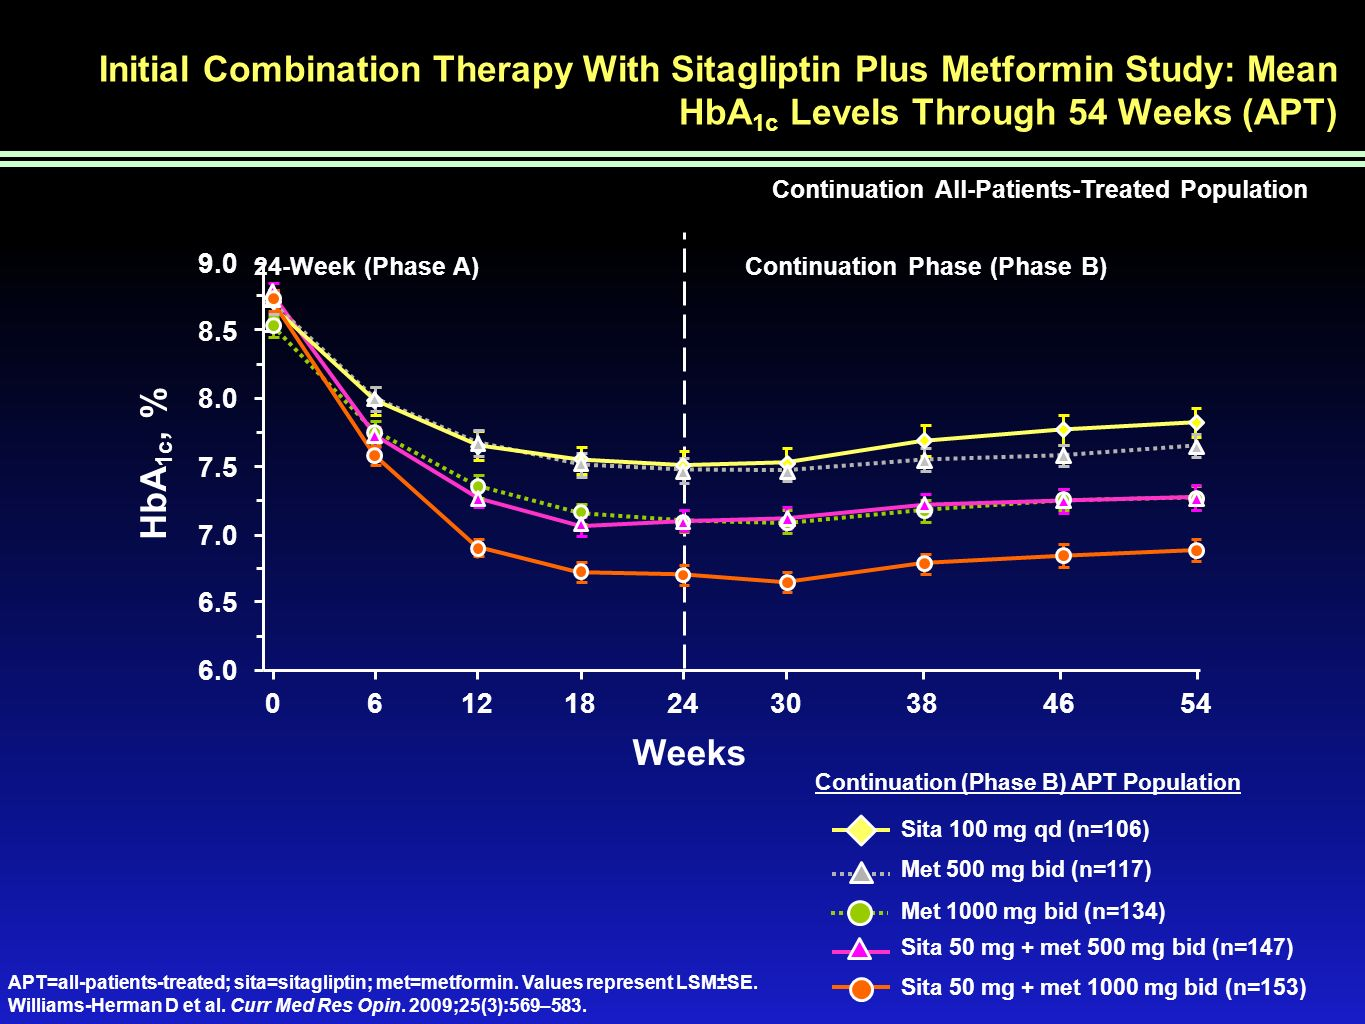 Initial Combination Therapy With Sitagliptin Plus Metformin Study: Mean HbA1c Levels Through 54 Weeks (APT)